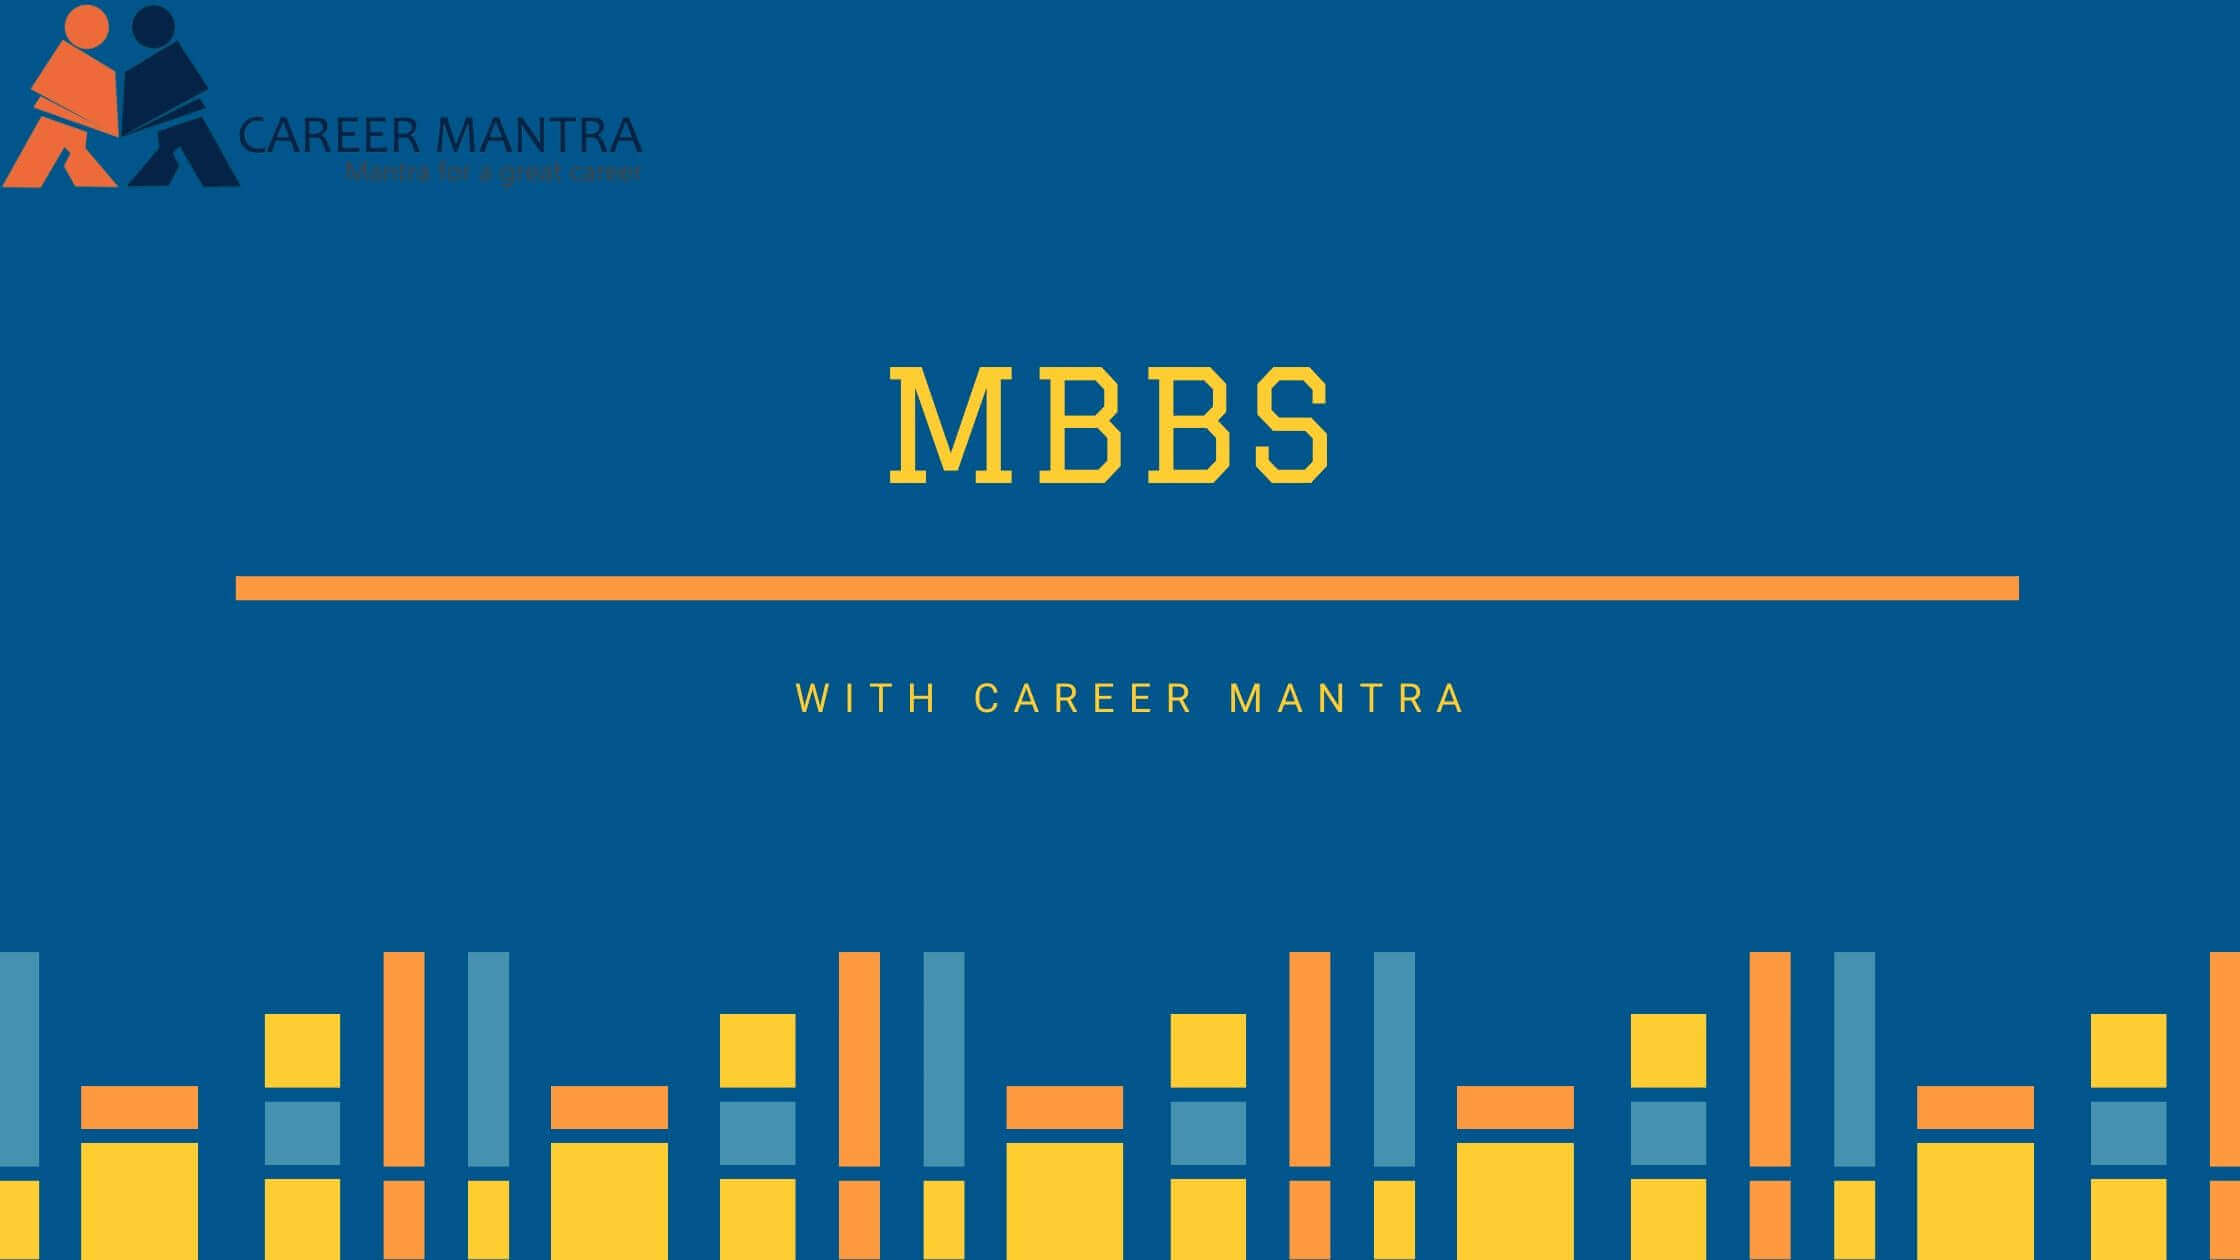 MBBS as best career option | Chosen for Excellence | 2020